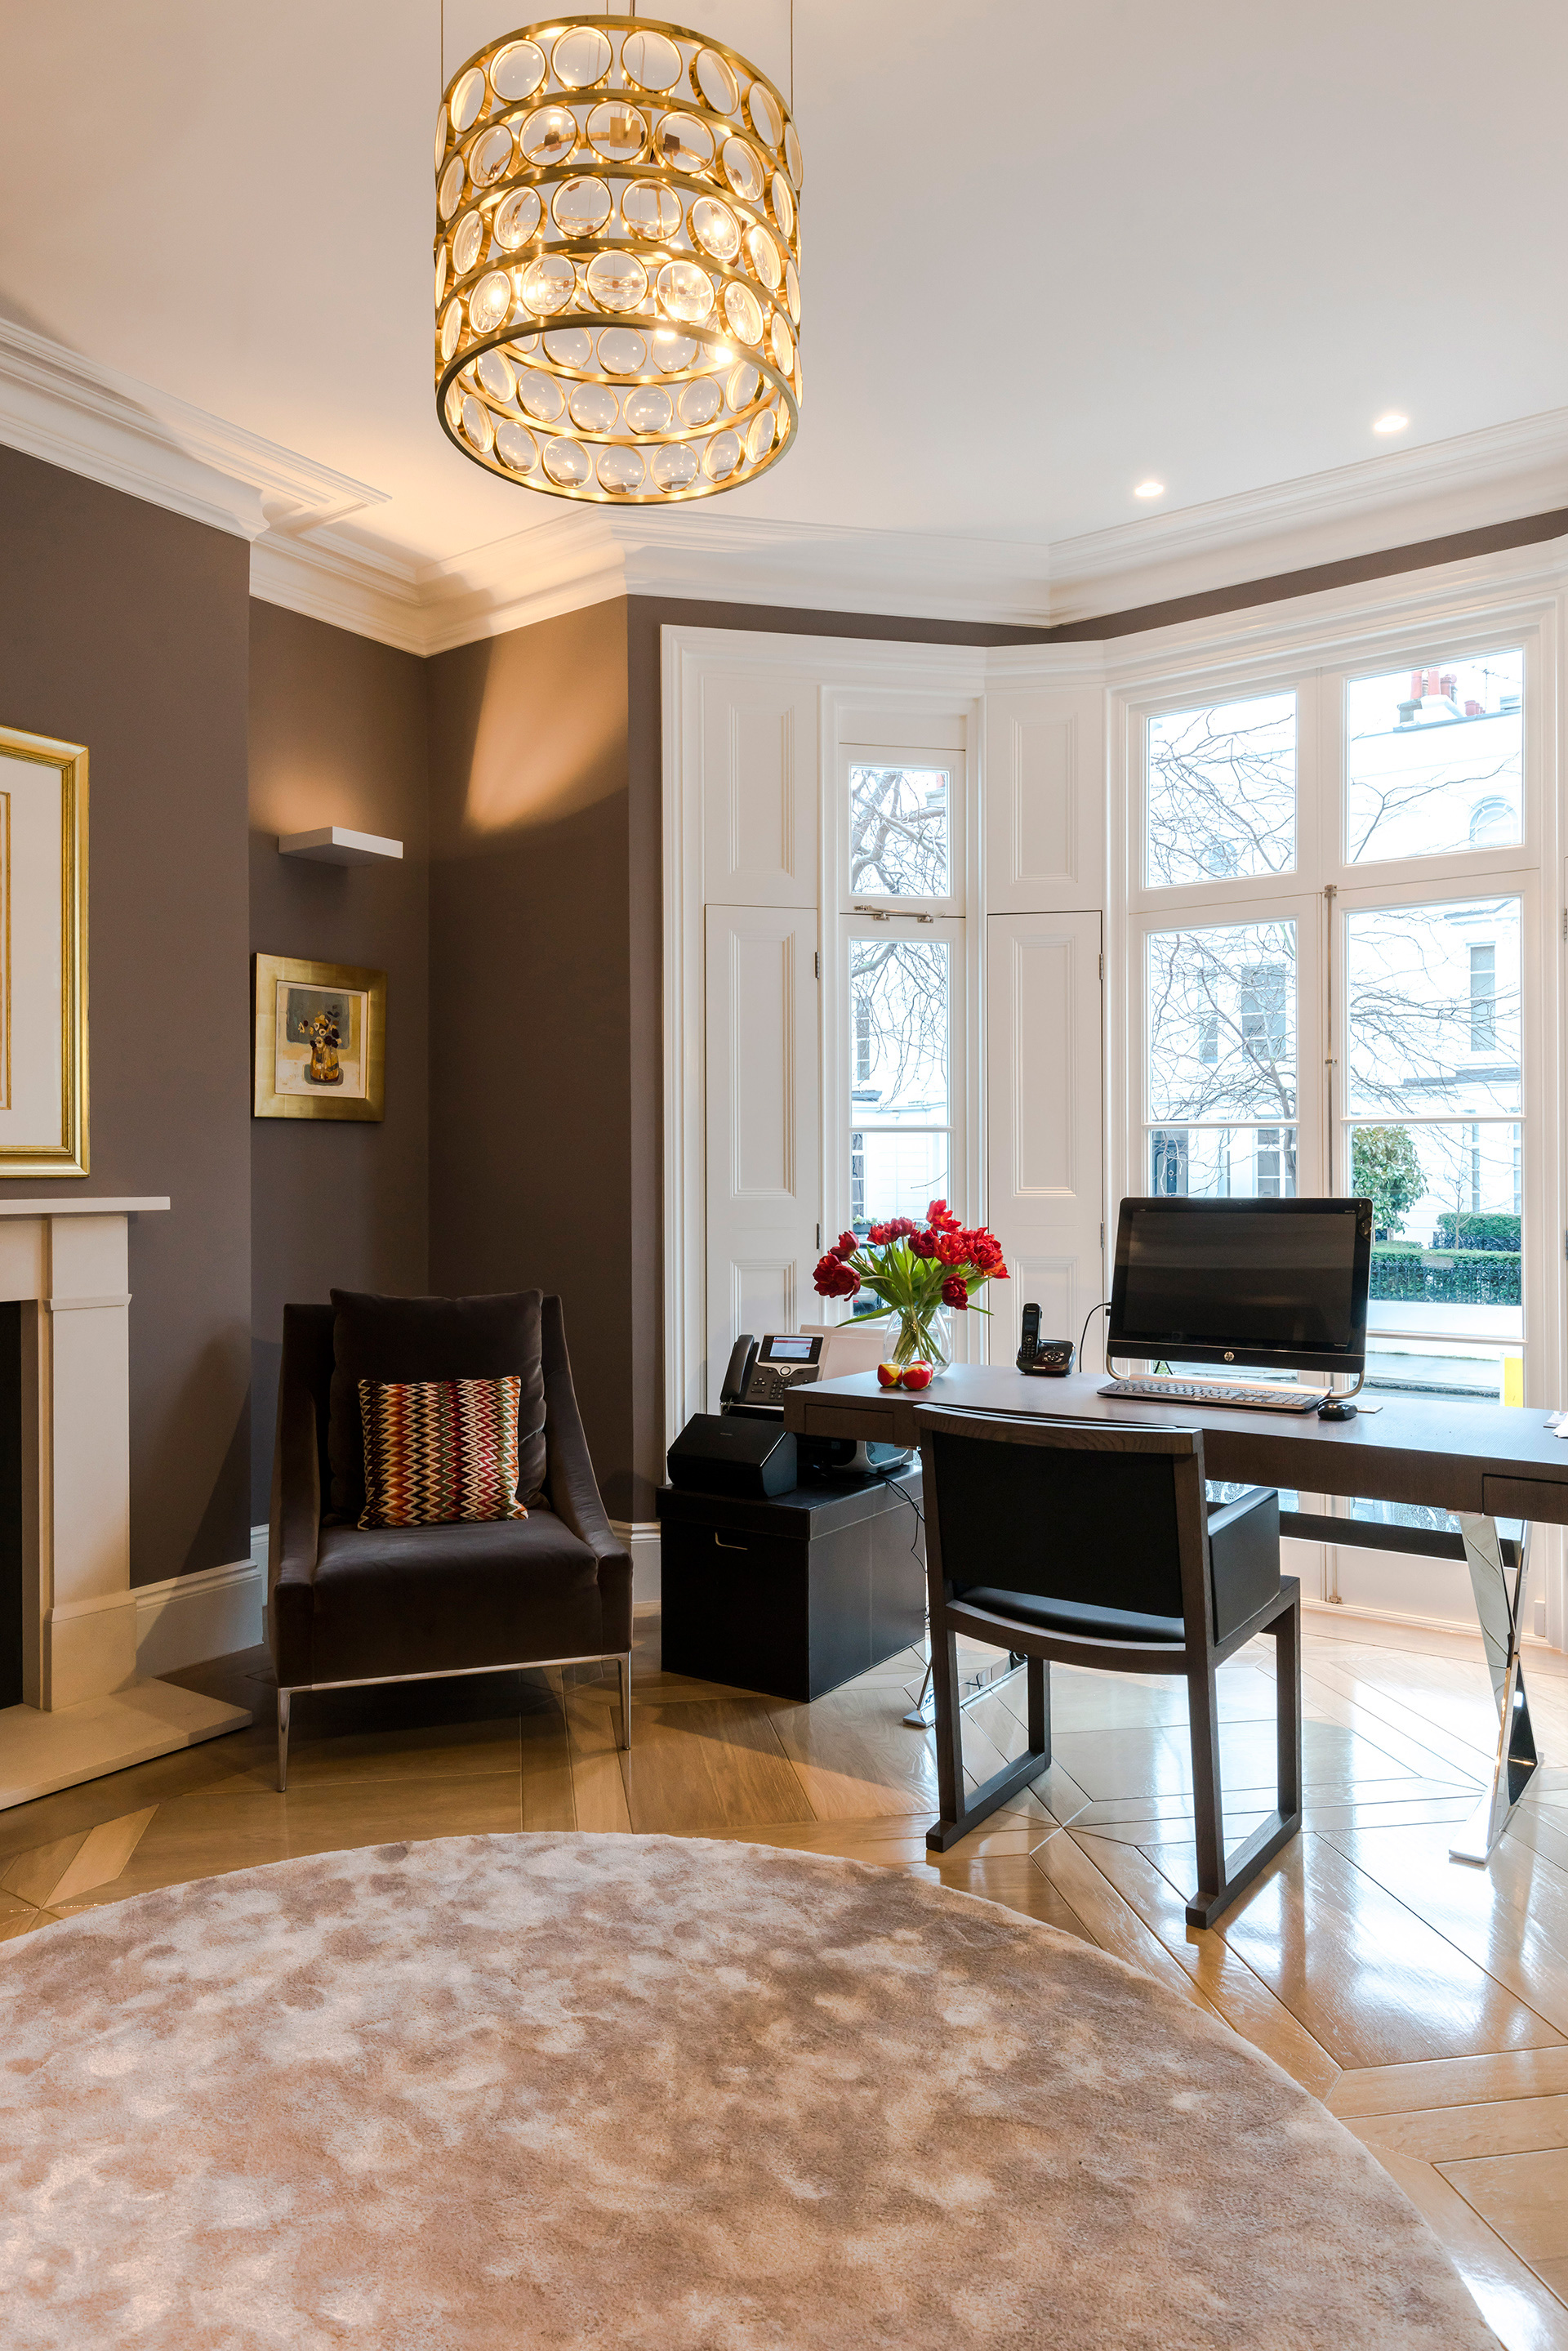 Studio 29 residential architects refurbishment kensington 2